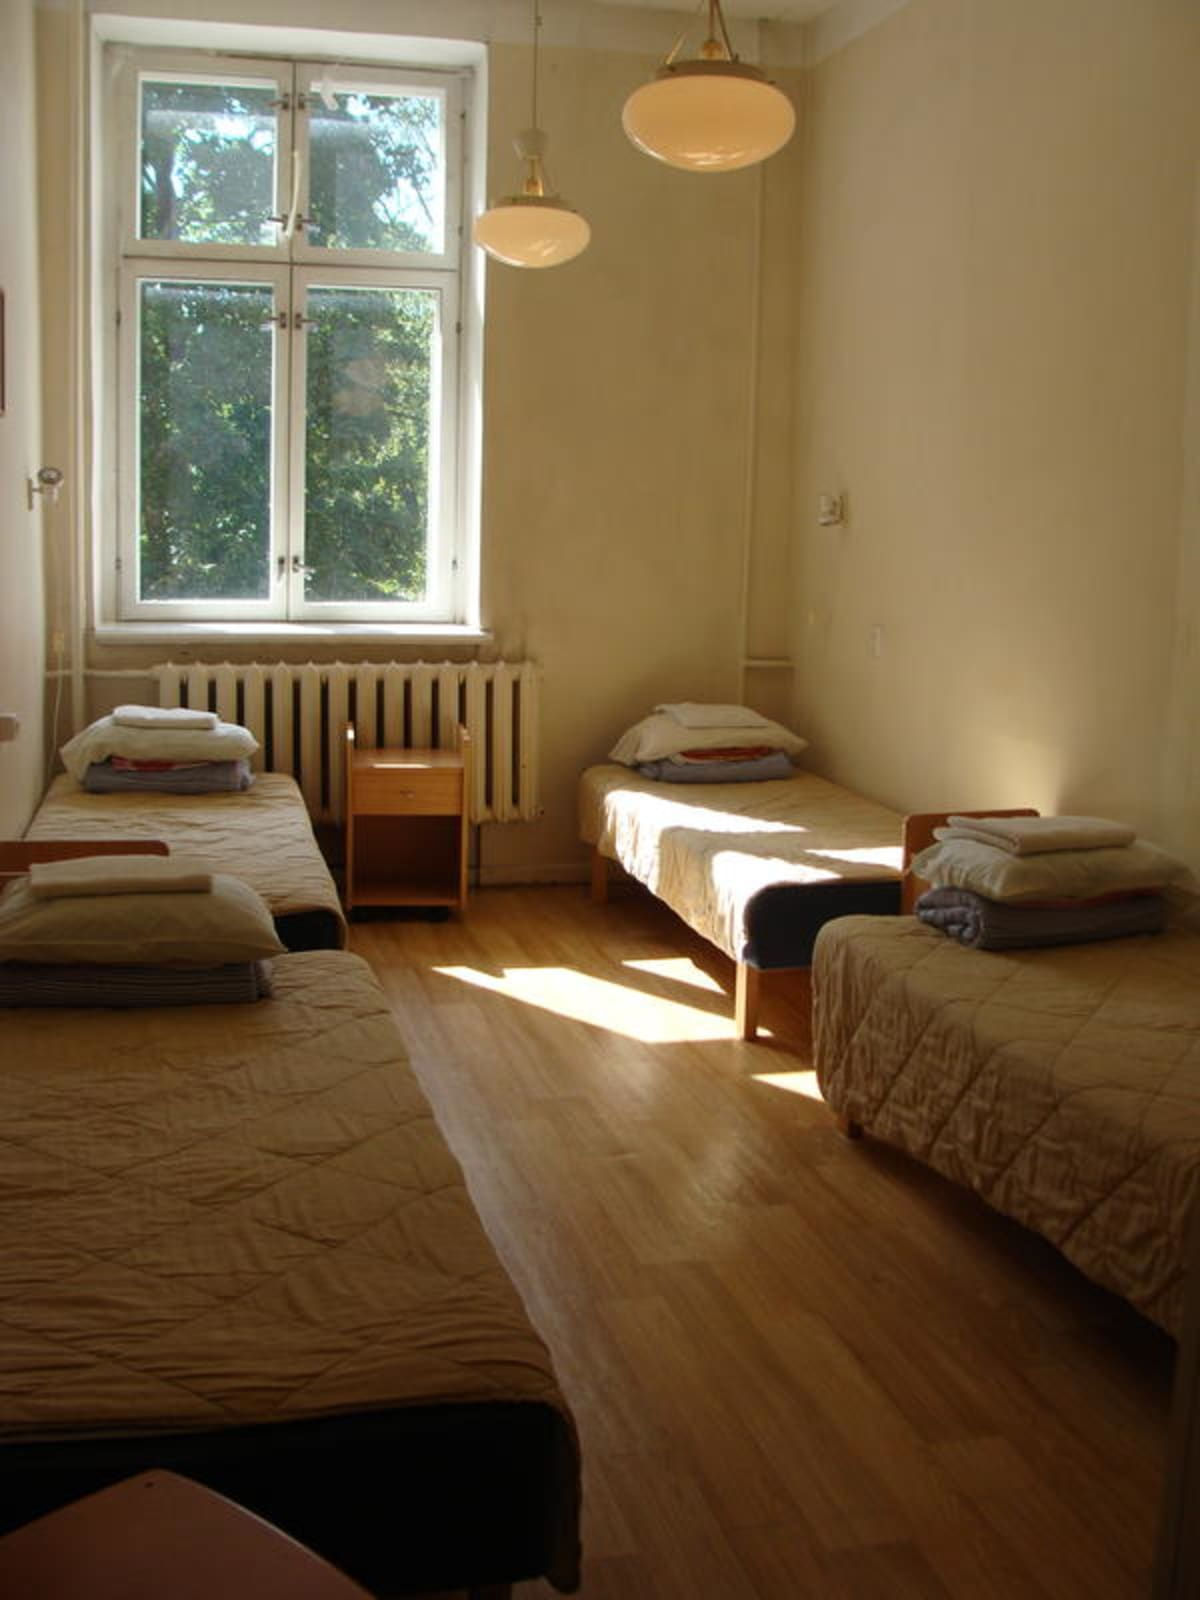 Hostel Louna, Parnu, Estonia